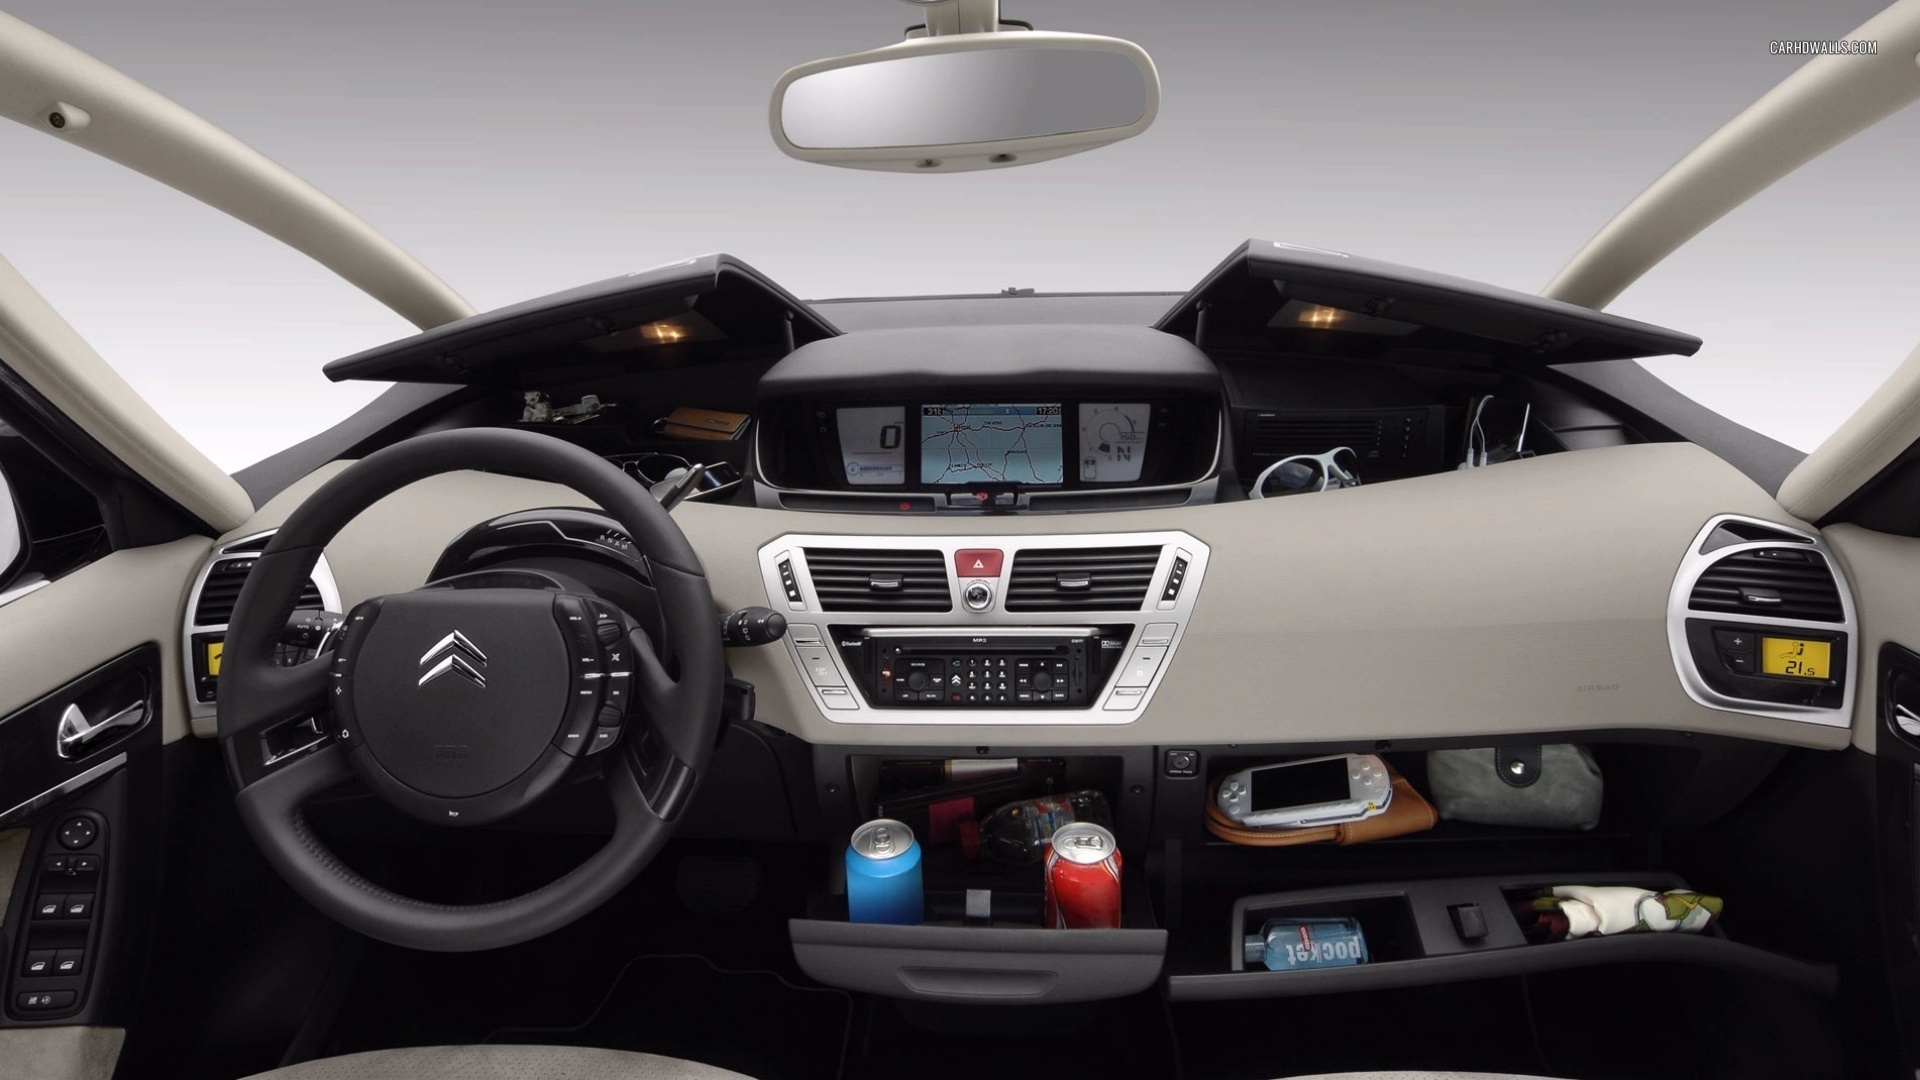 fantastic-design-of-the-white-dash-ideas-with-many-hidden-storage-ideas-as-the-citroen-c4-2015-interior